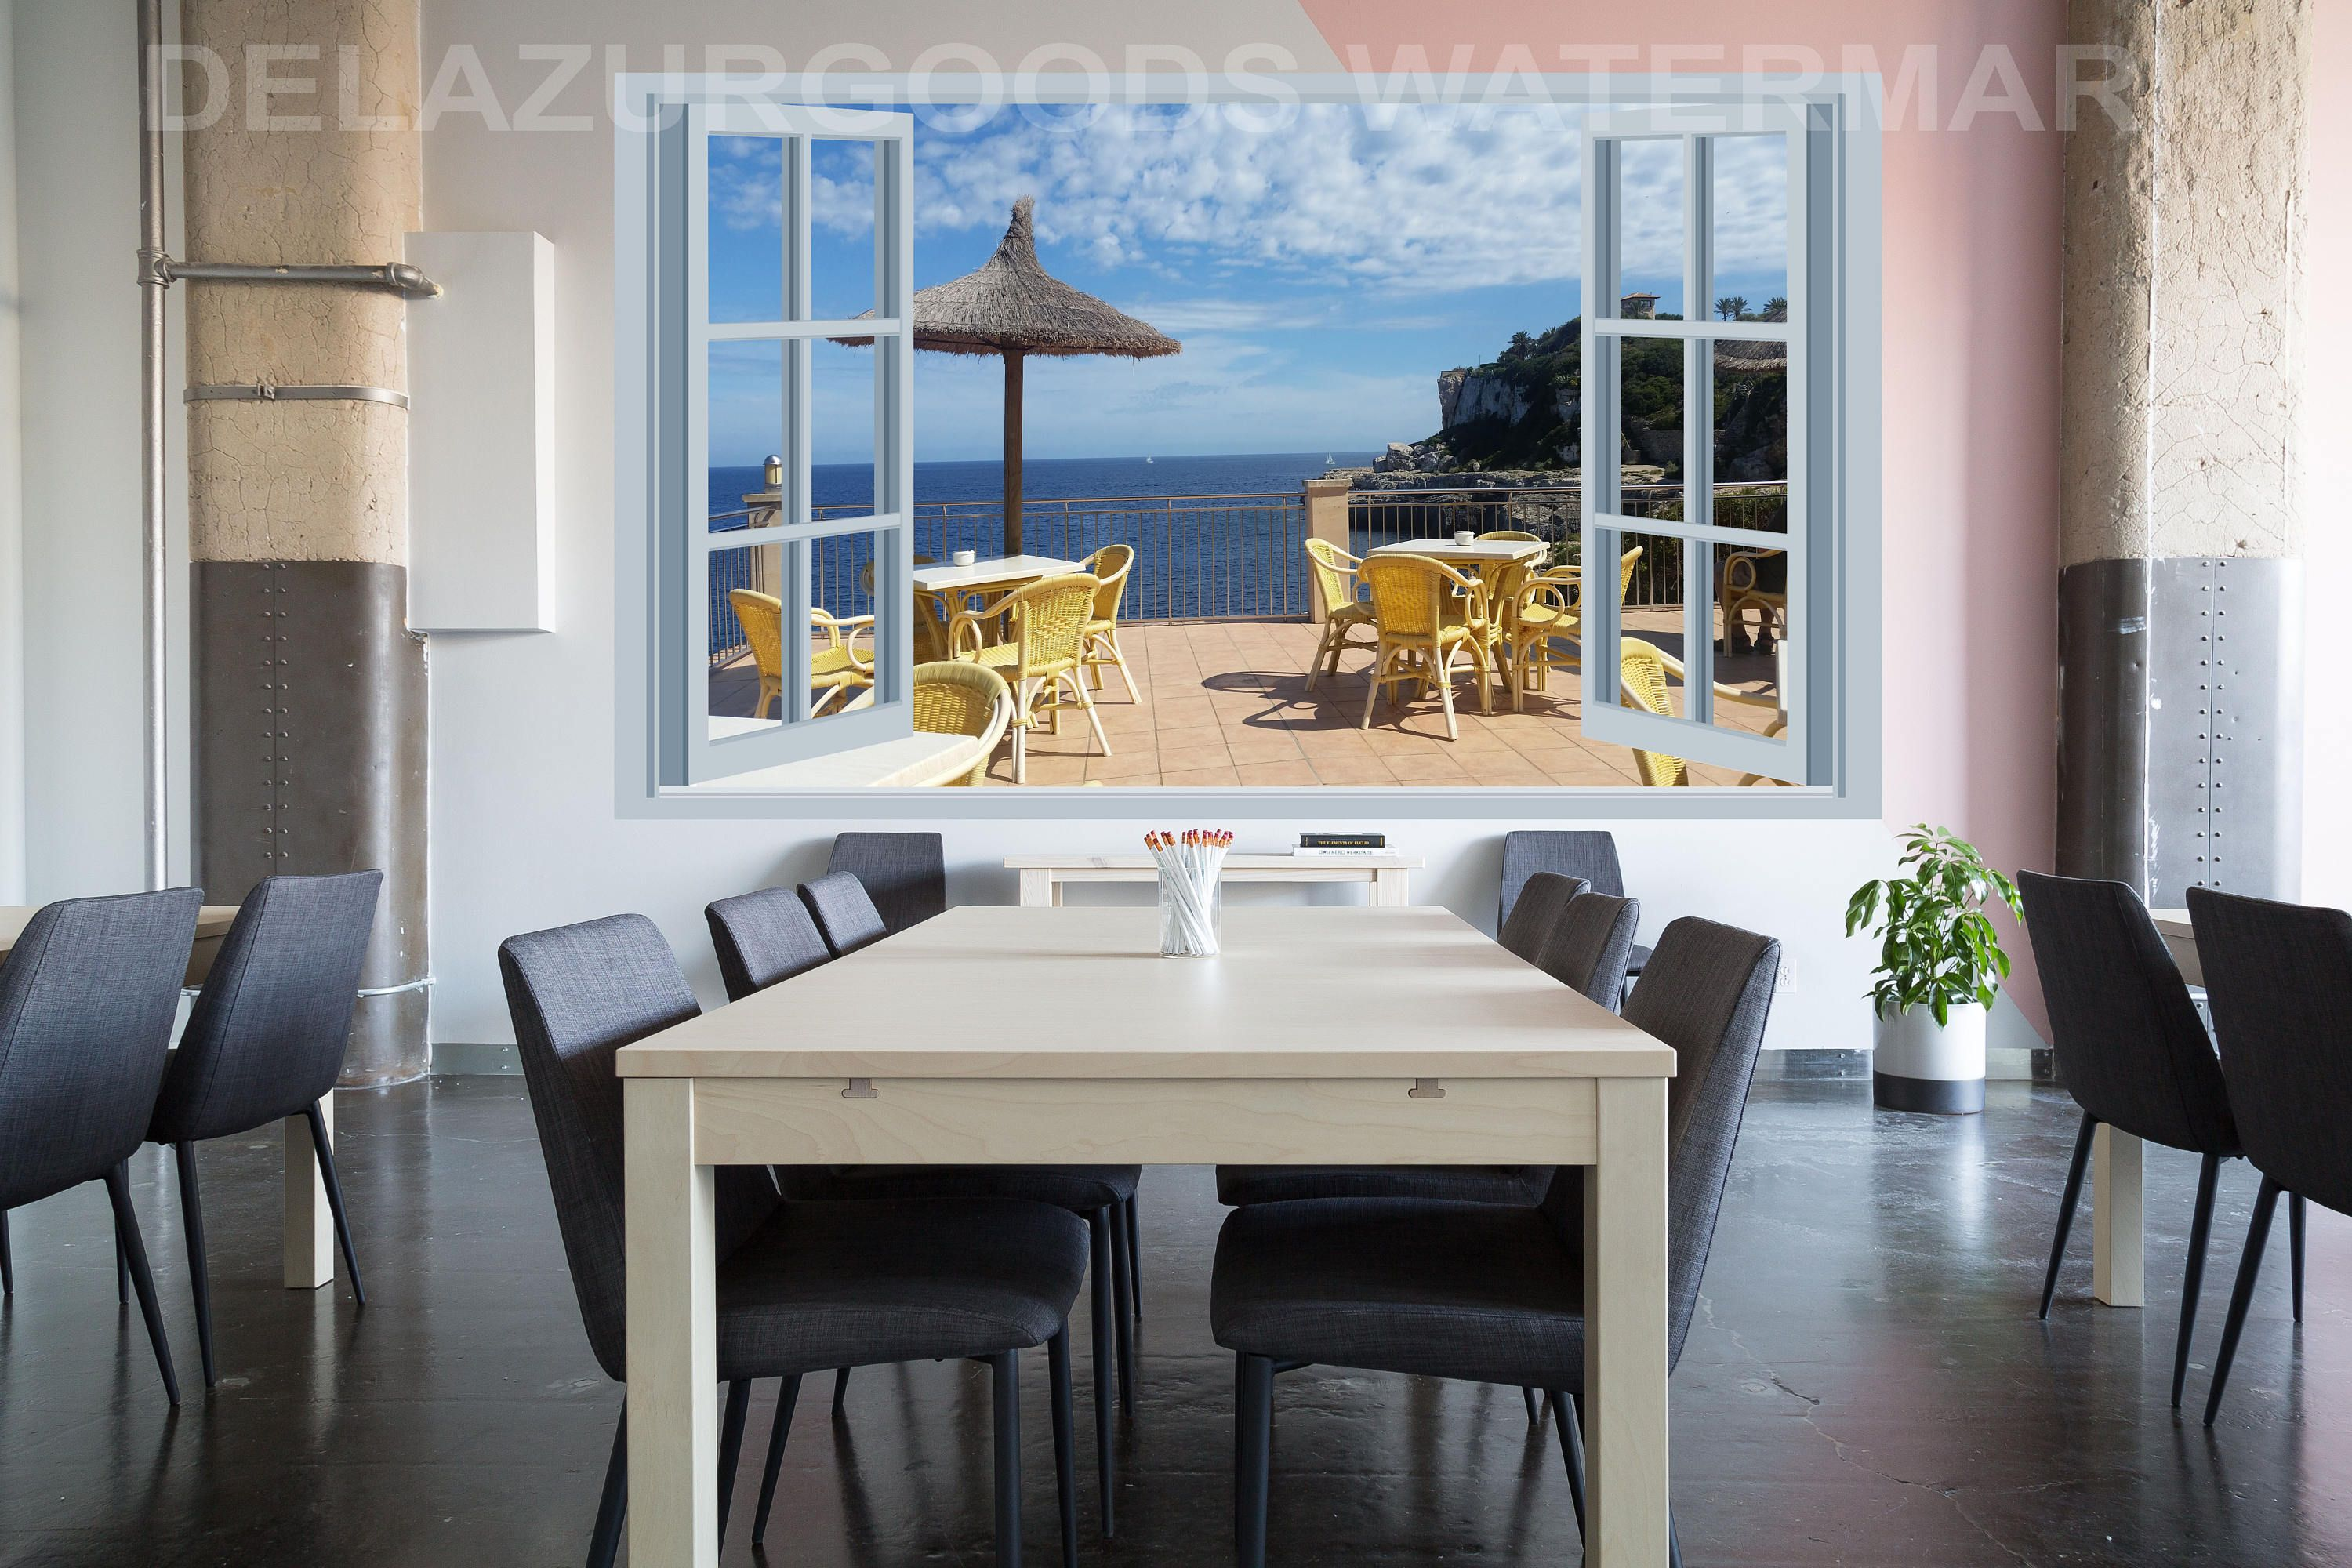 Terrace Window View Wall Decal